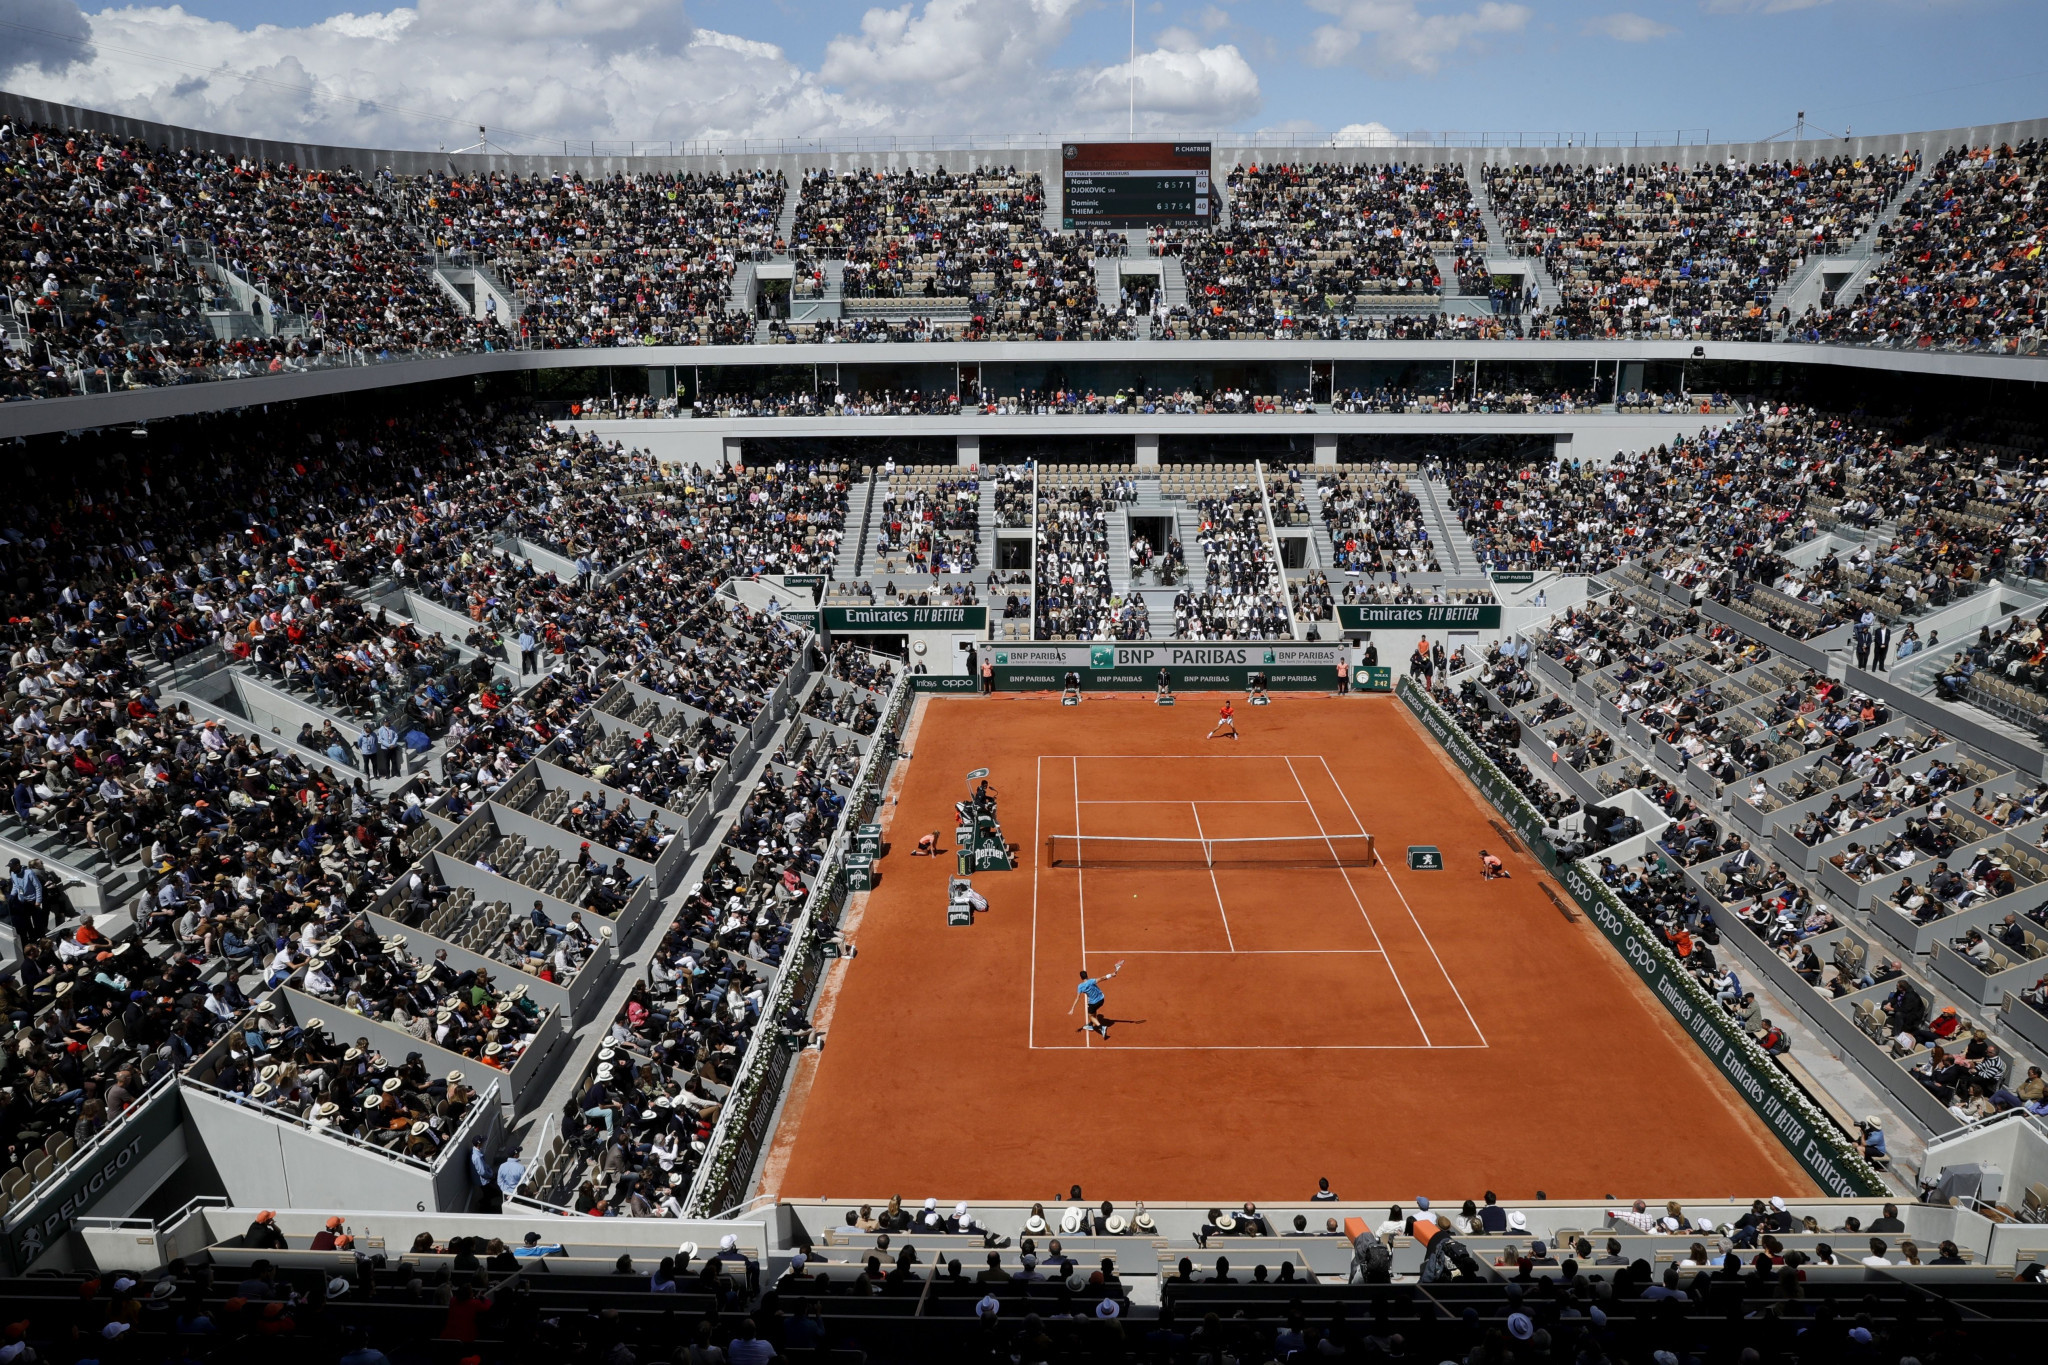 Tennis bodies set to financially support players affected by coronavirus pandemic